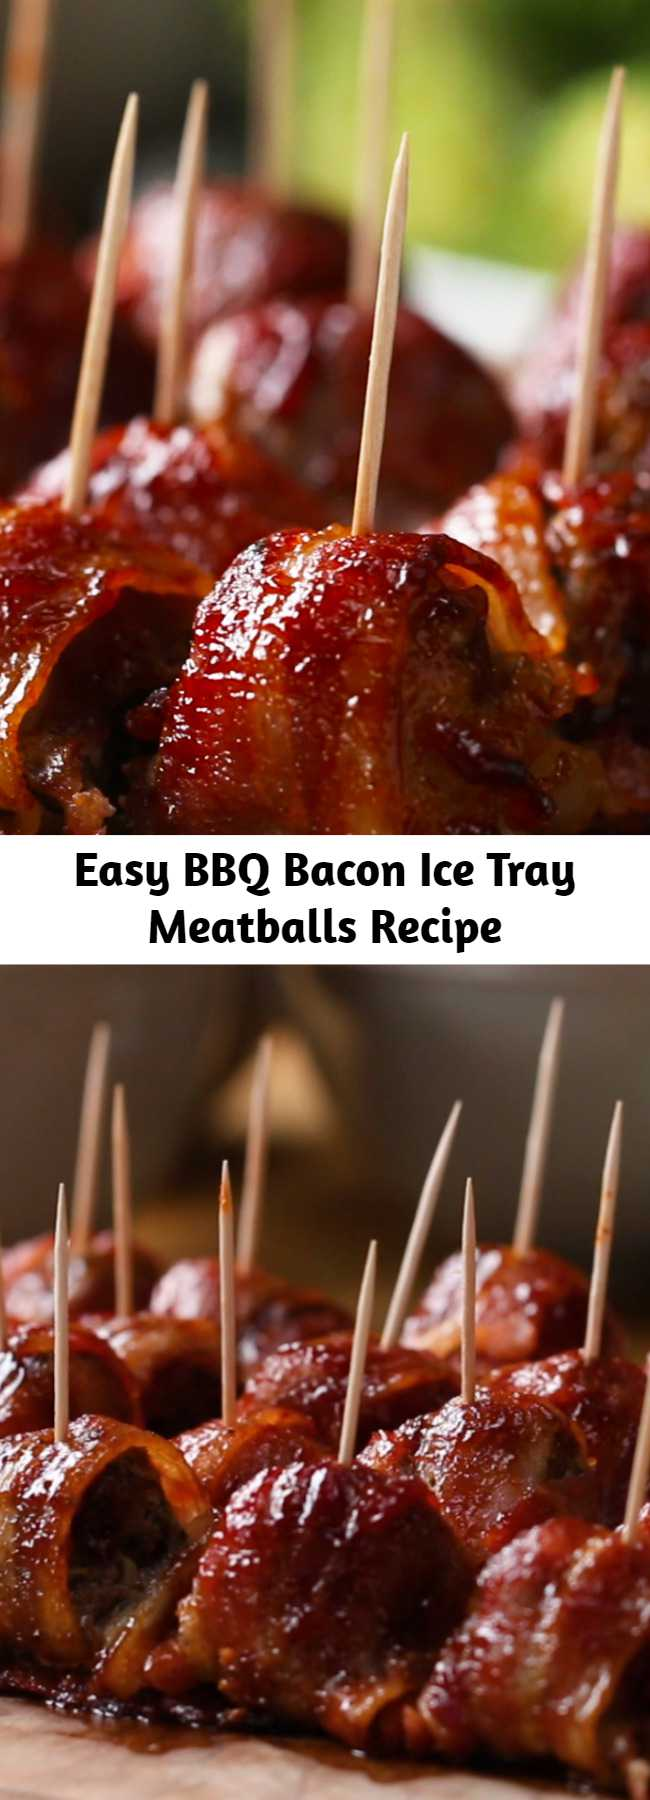 Easy BBQ Bacon Ice Tray Meatballs Recipe - I made these & they were a HUGE hit!! Didn't think they were too much work. Everyone was raving about these & I'm going to make them again very soon! Several people requested the recipe. Easy to put together!